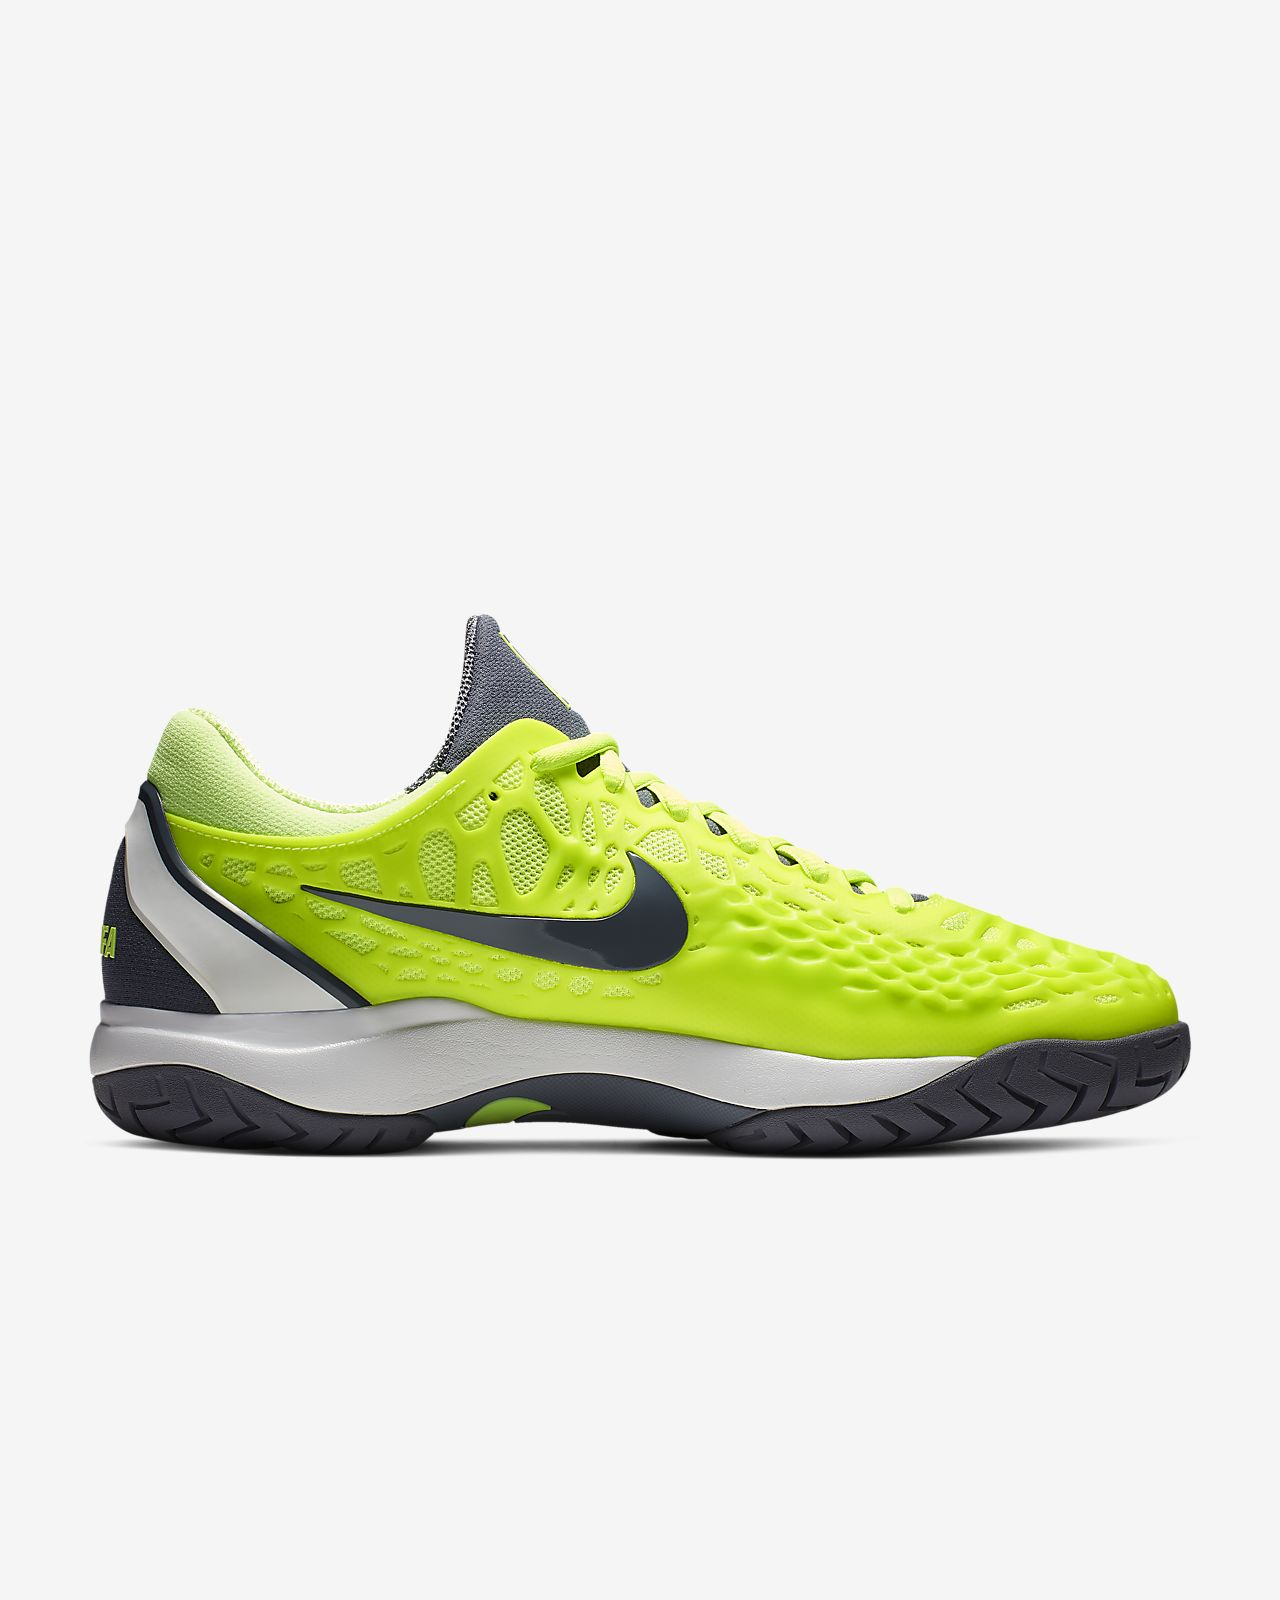 purchase cheap 60493 4afc1 ... NikeCourt Zoom Cage 3 Men s Hard Court Tennis Shoe